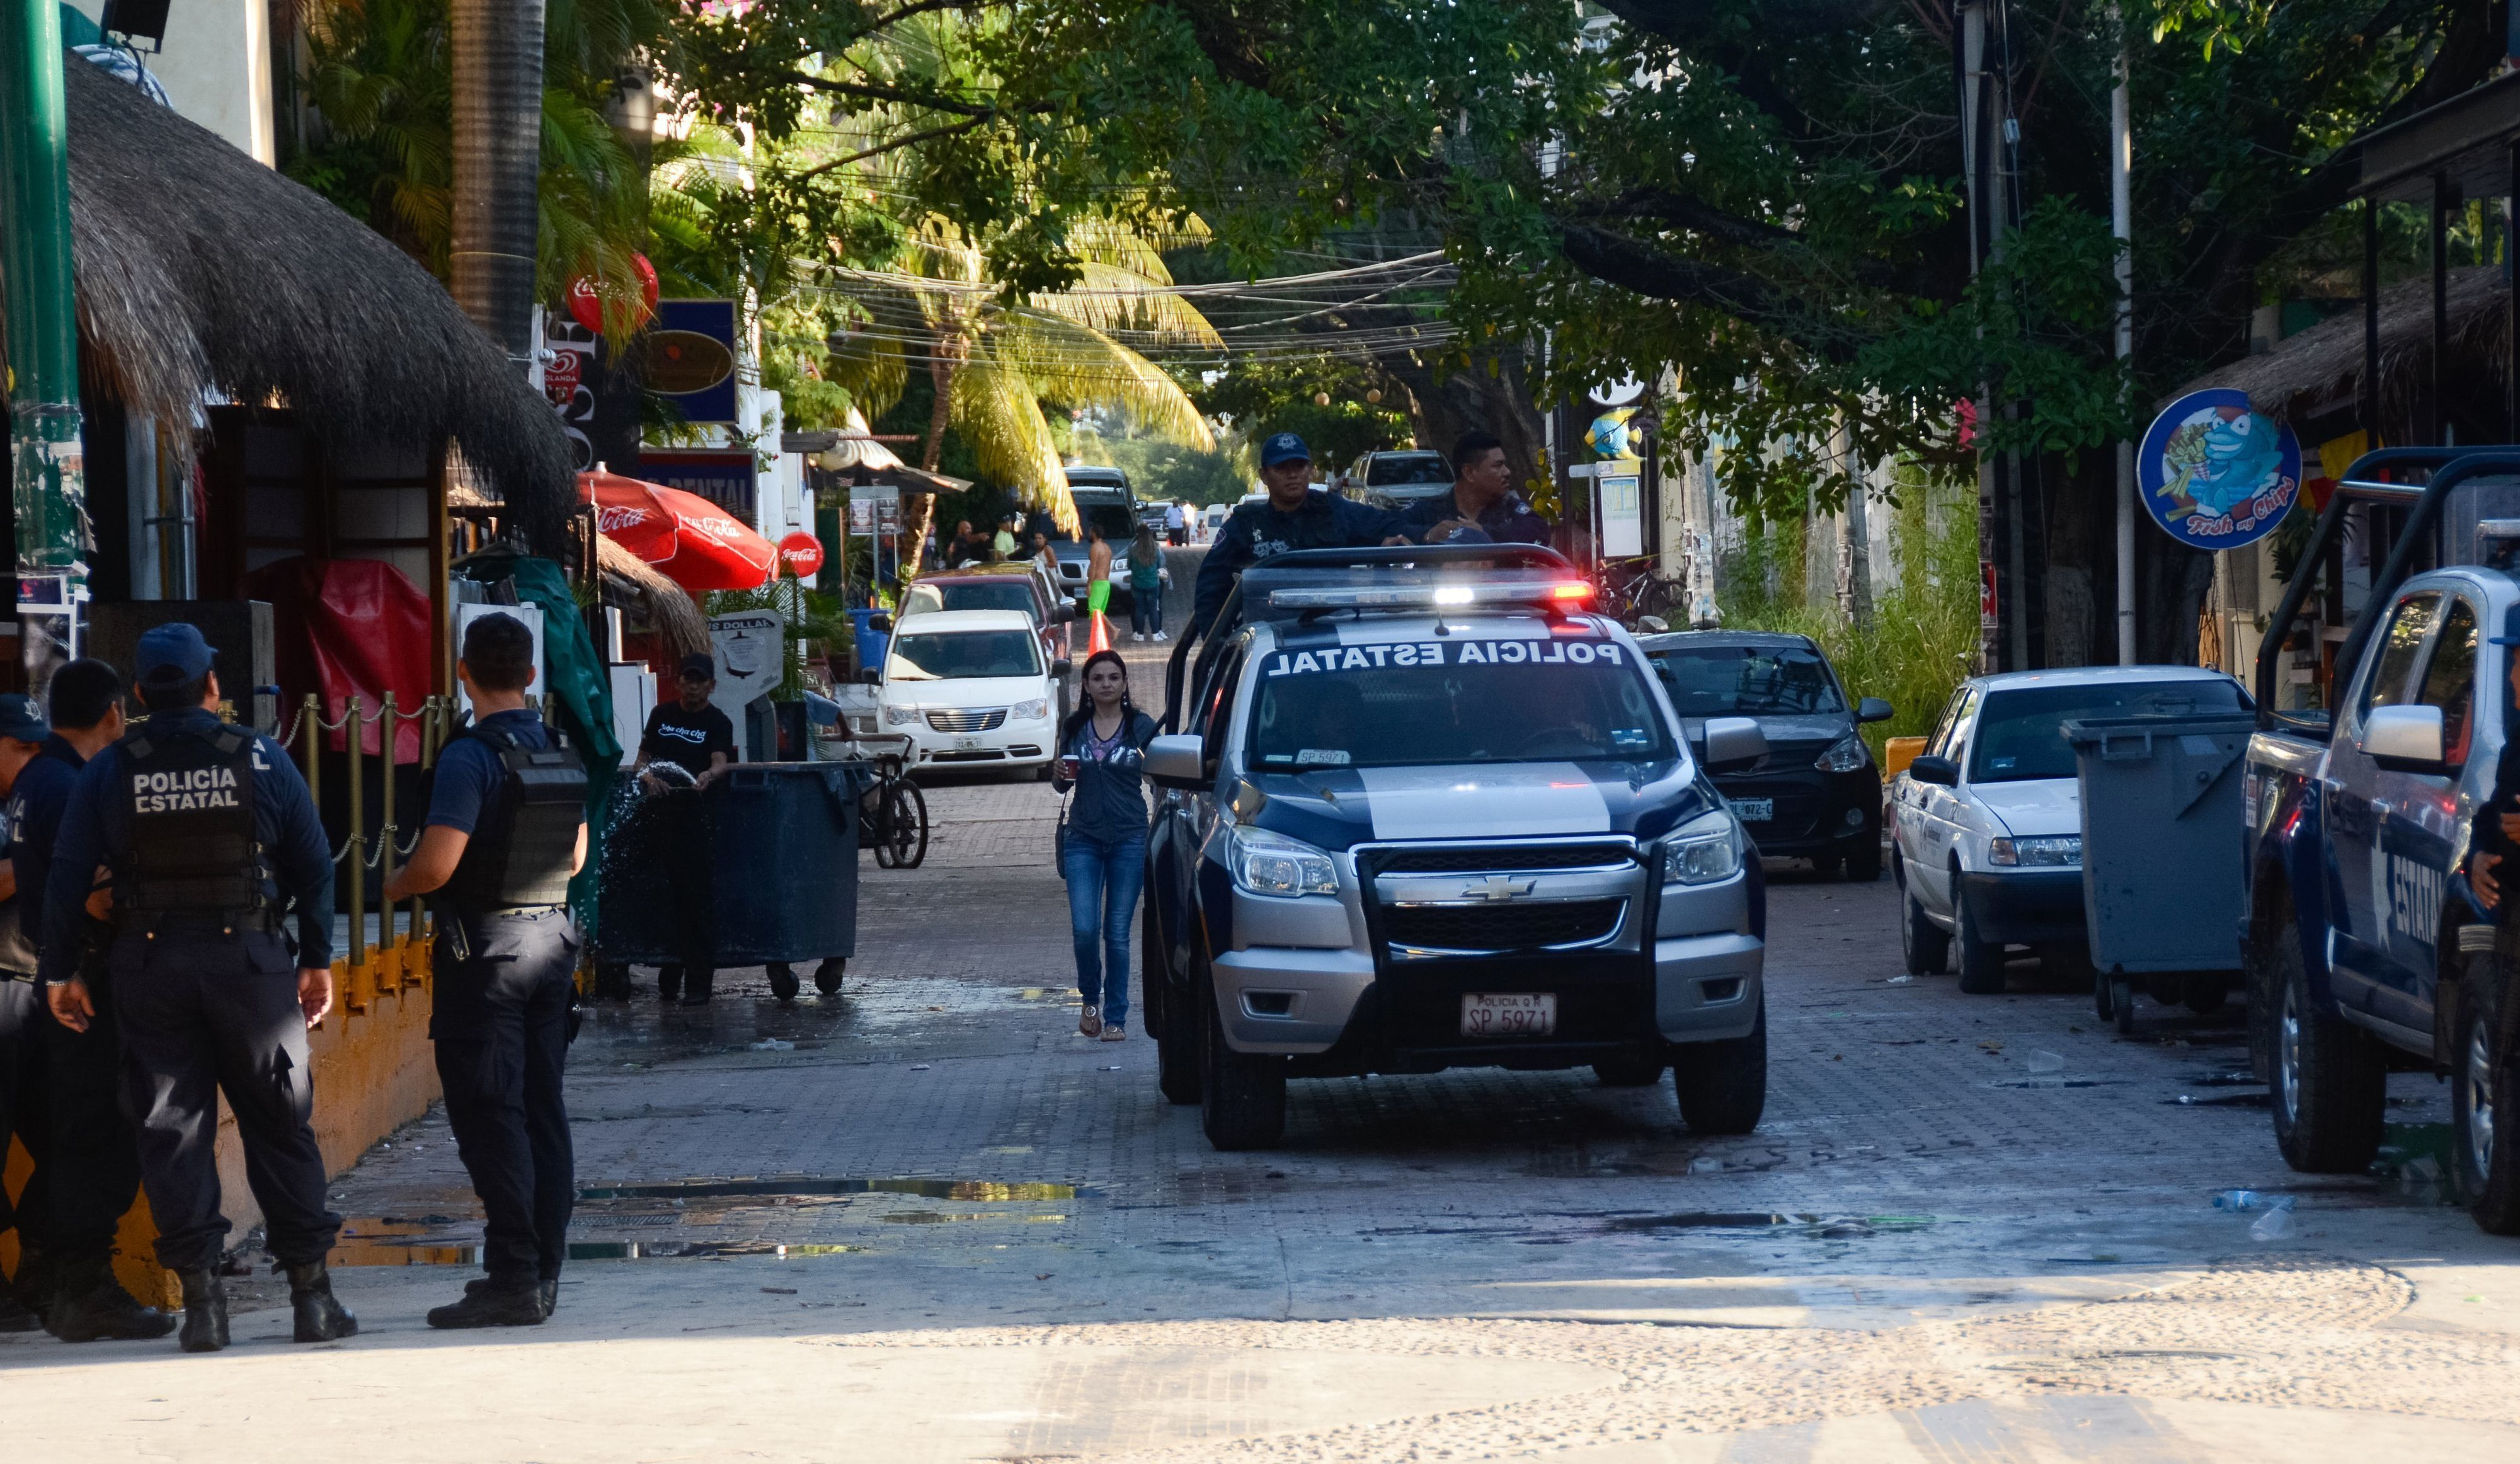 Mexican police agents patrol near a nightclub in Playa del Carmen, Quintana Roo state, Mexico where 5 people were killed, three of them foreigners, during a music festival on January 16, 2017. A shooting erupted at an electronic music festival in the Mexican resort of Playa del Carmen early Monday, leaving at least five people dead and sparking a stampede, the mayor said. Fifteen people were injured, some in the stampede, after at least one shooter opened fire before dawn at the Blue Parrot nightclub during the BPM festival.    / AFP / STR        (Photo credit should read STR/AFP/Getty Images)